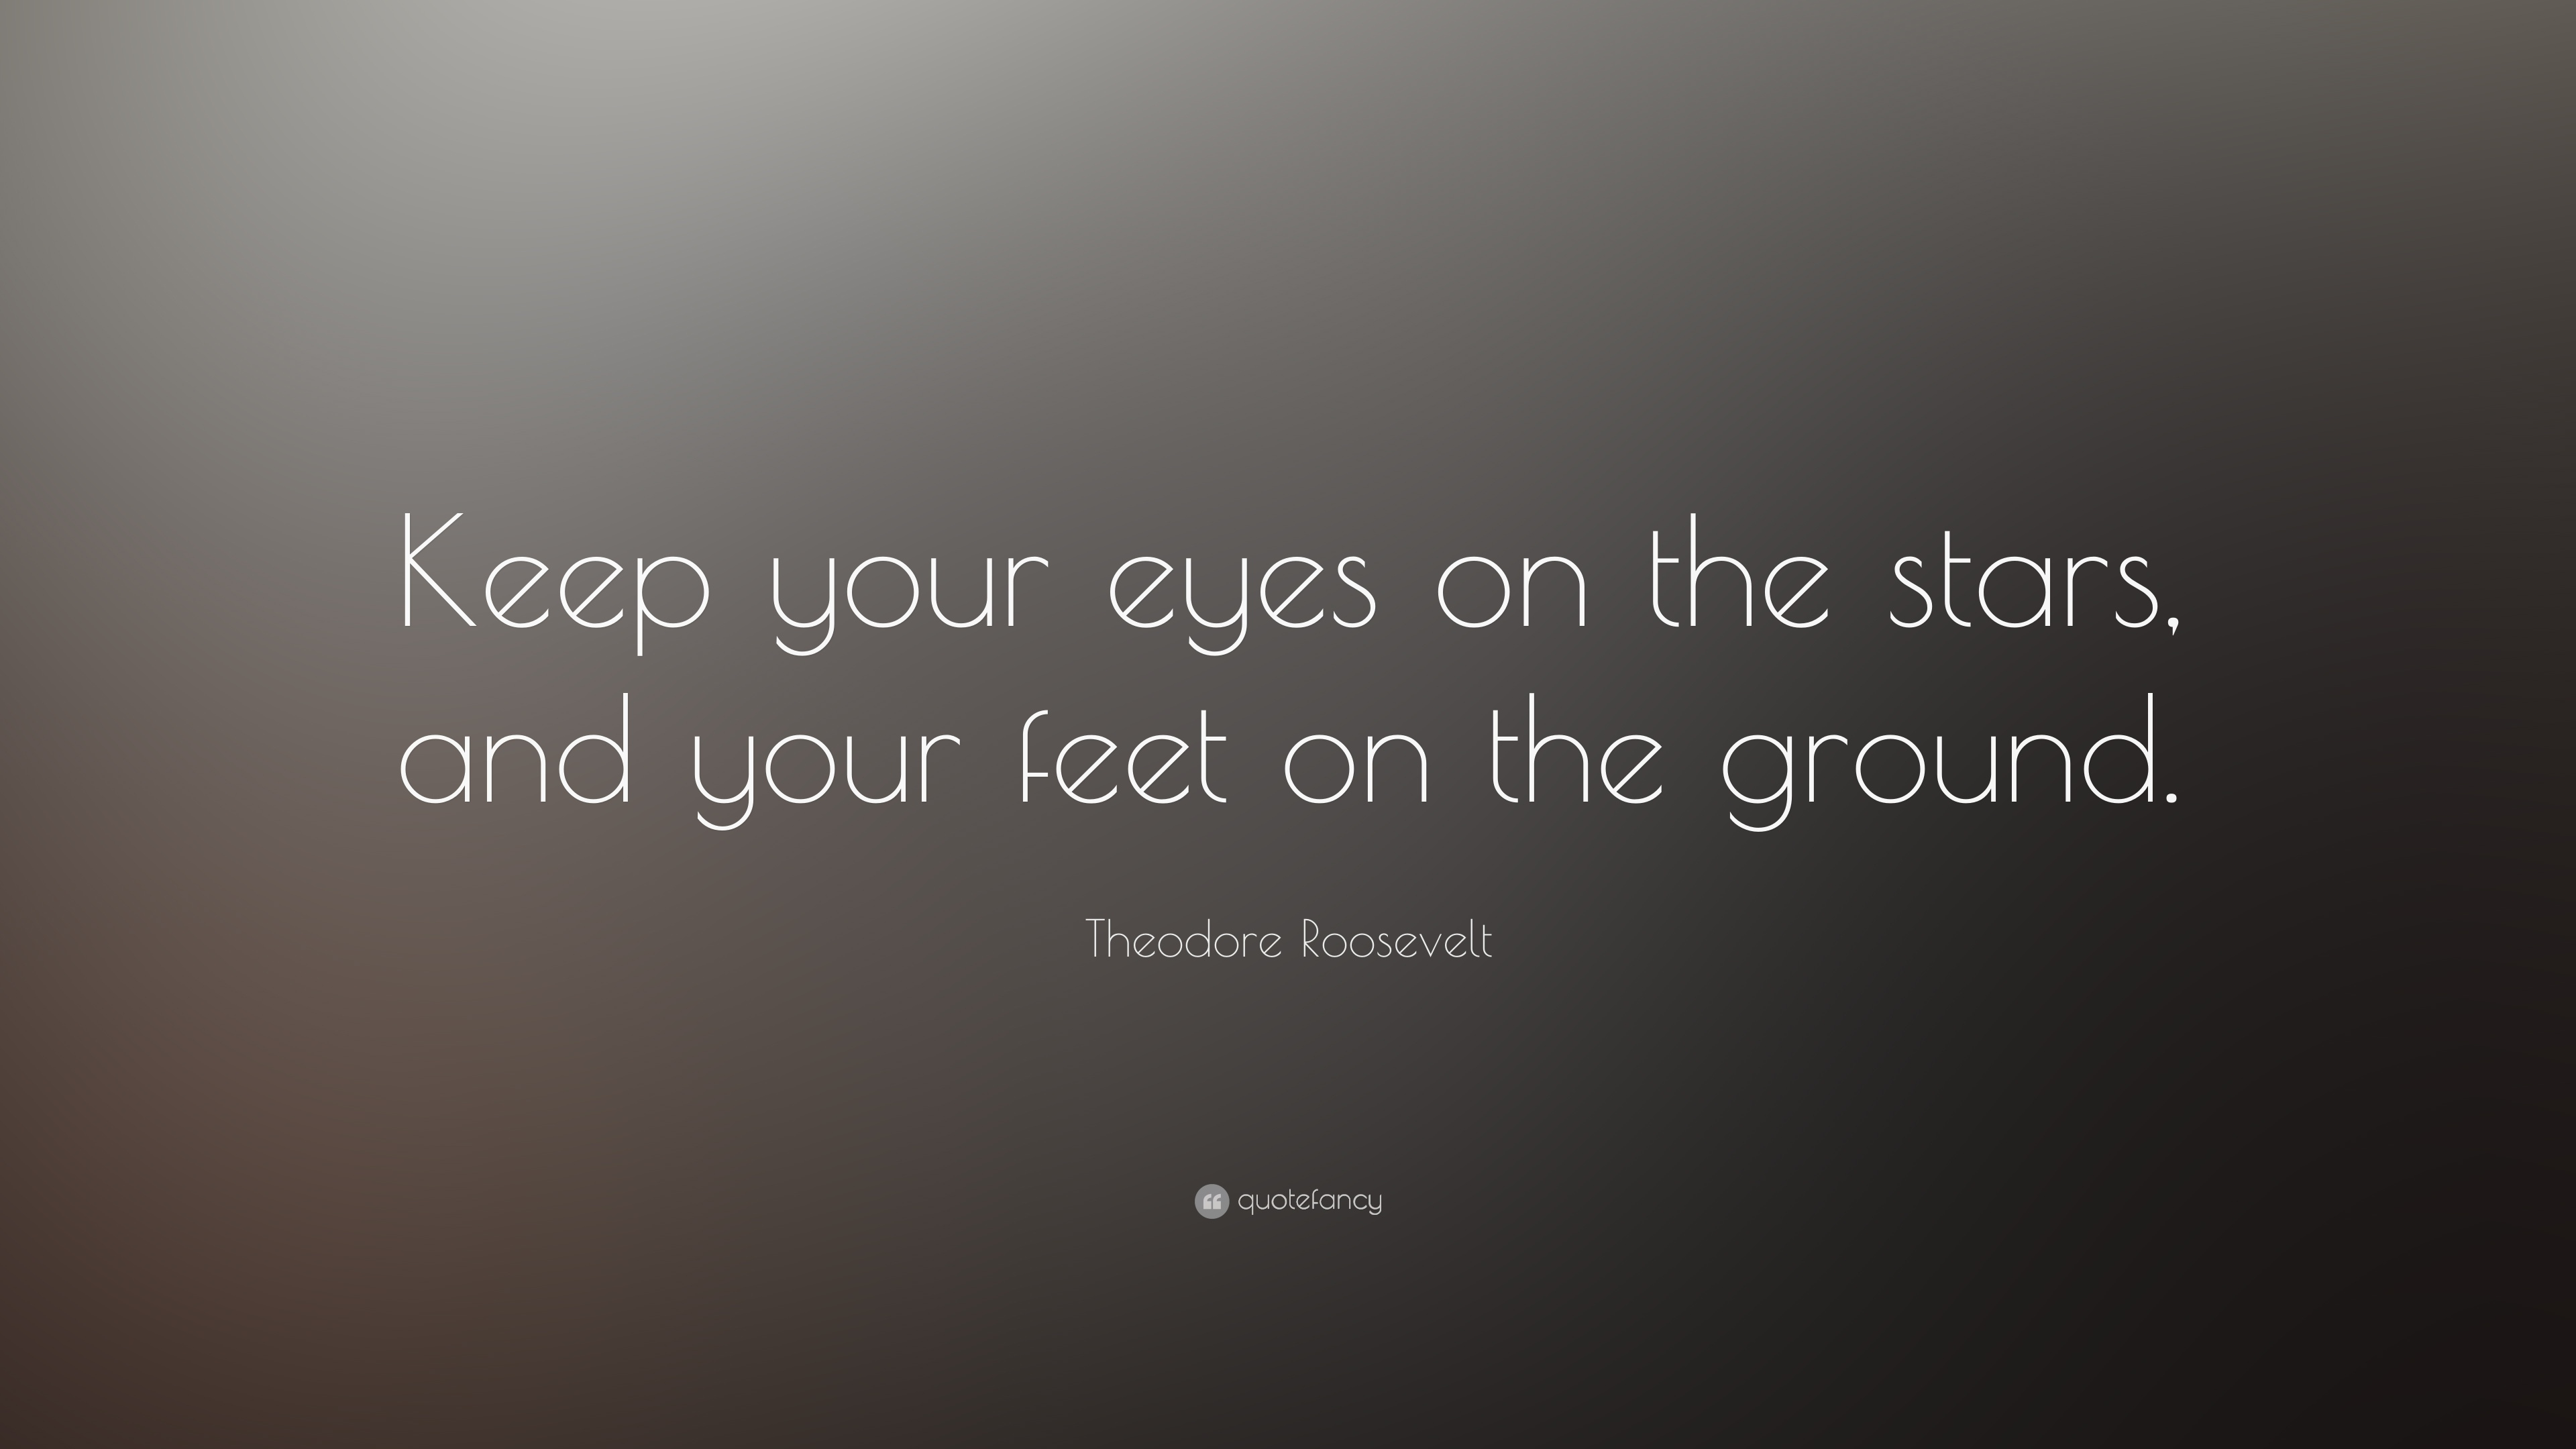 Theodore Roosevelt Quote Keep Your Eyes On The Stars And Your